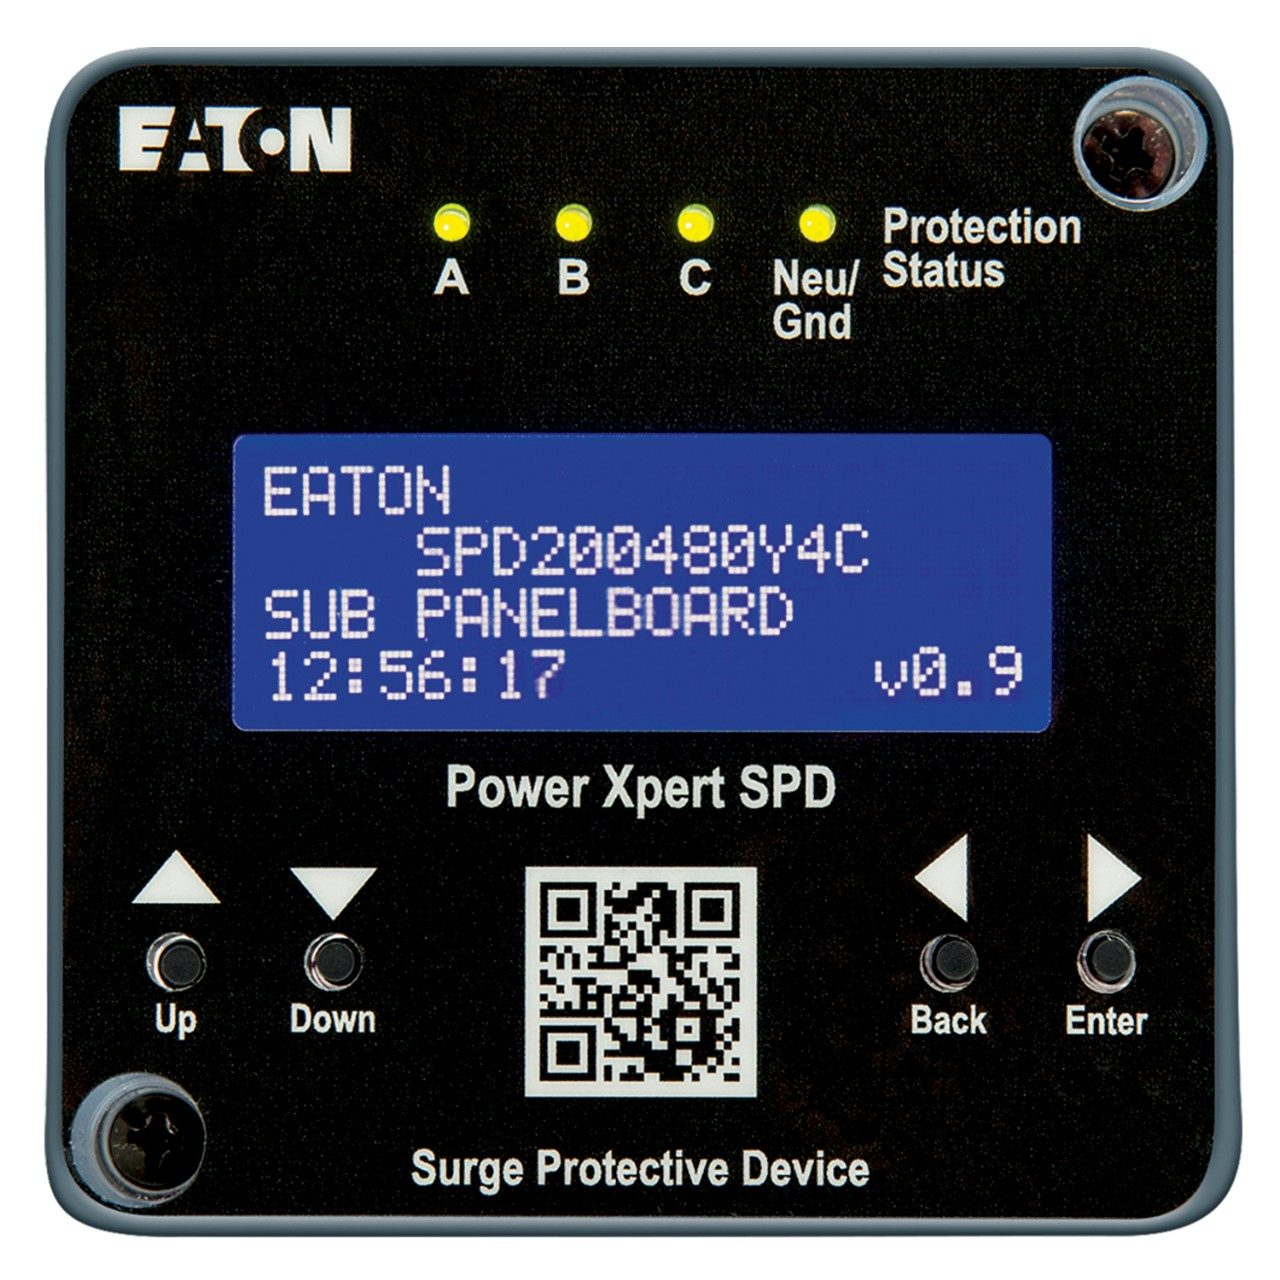 Eaton Offers Connected Surge Protection with New Power Xpert SPD